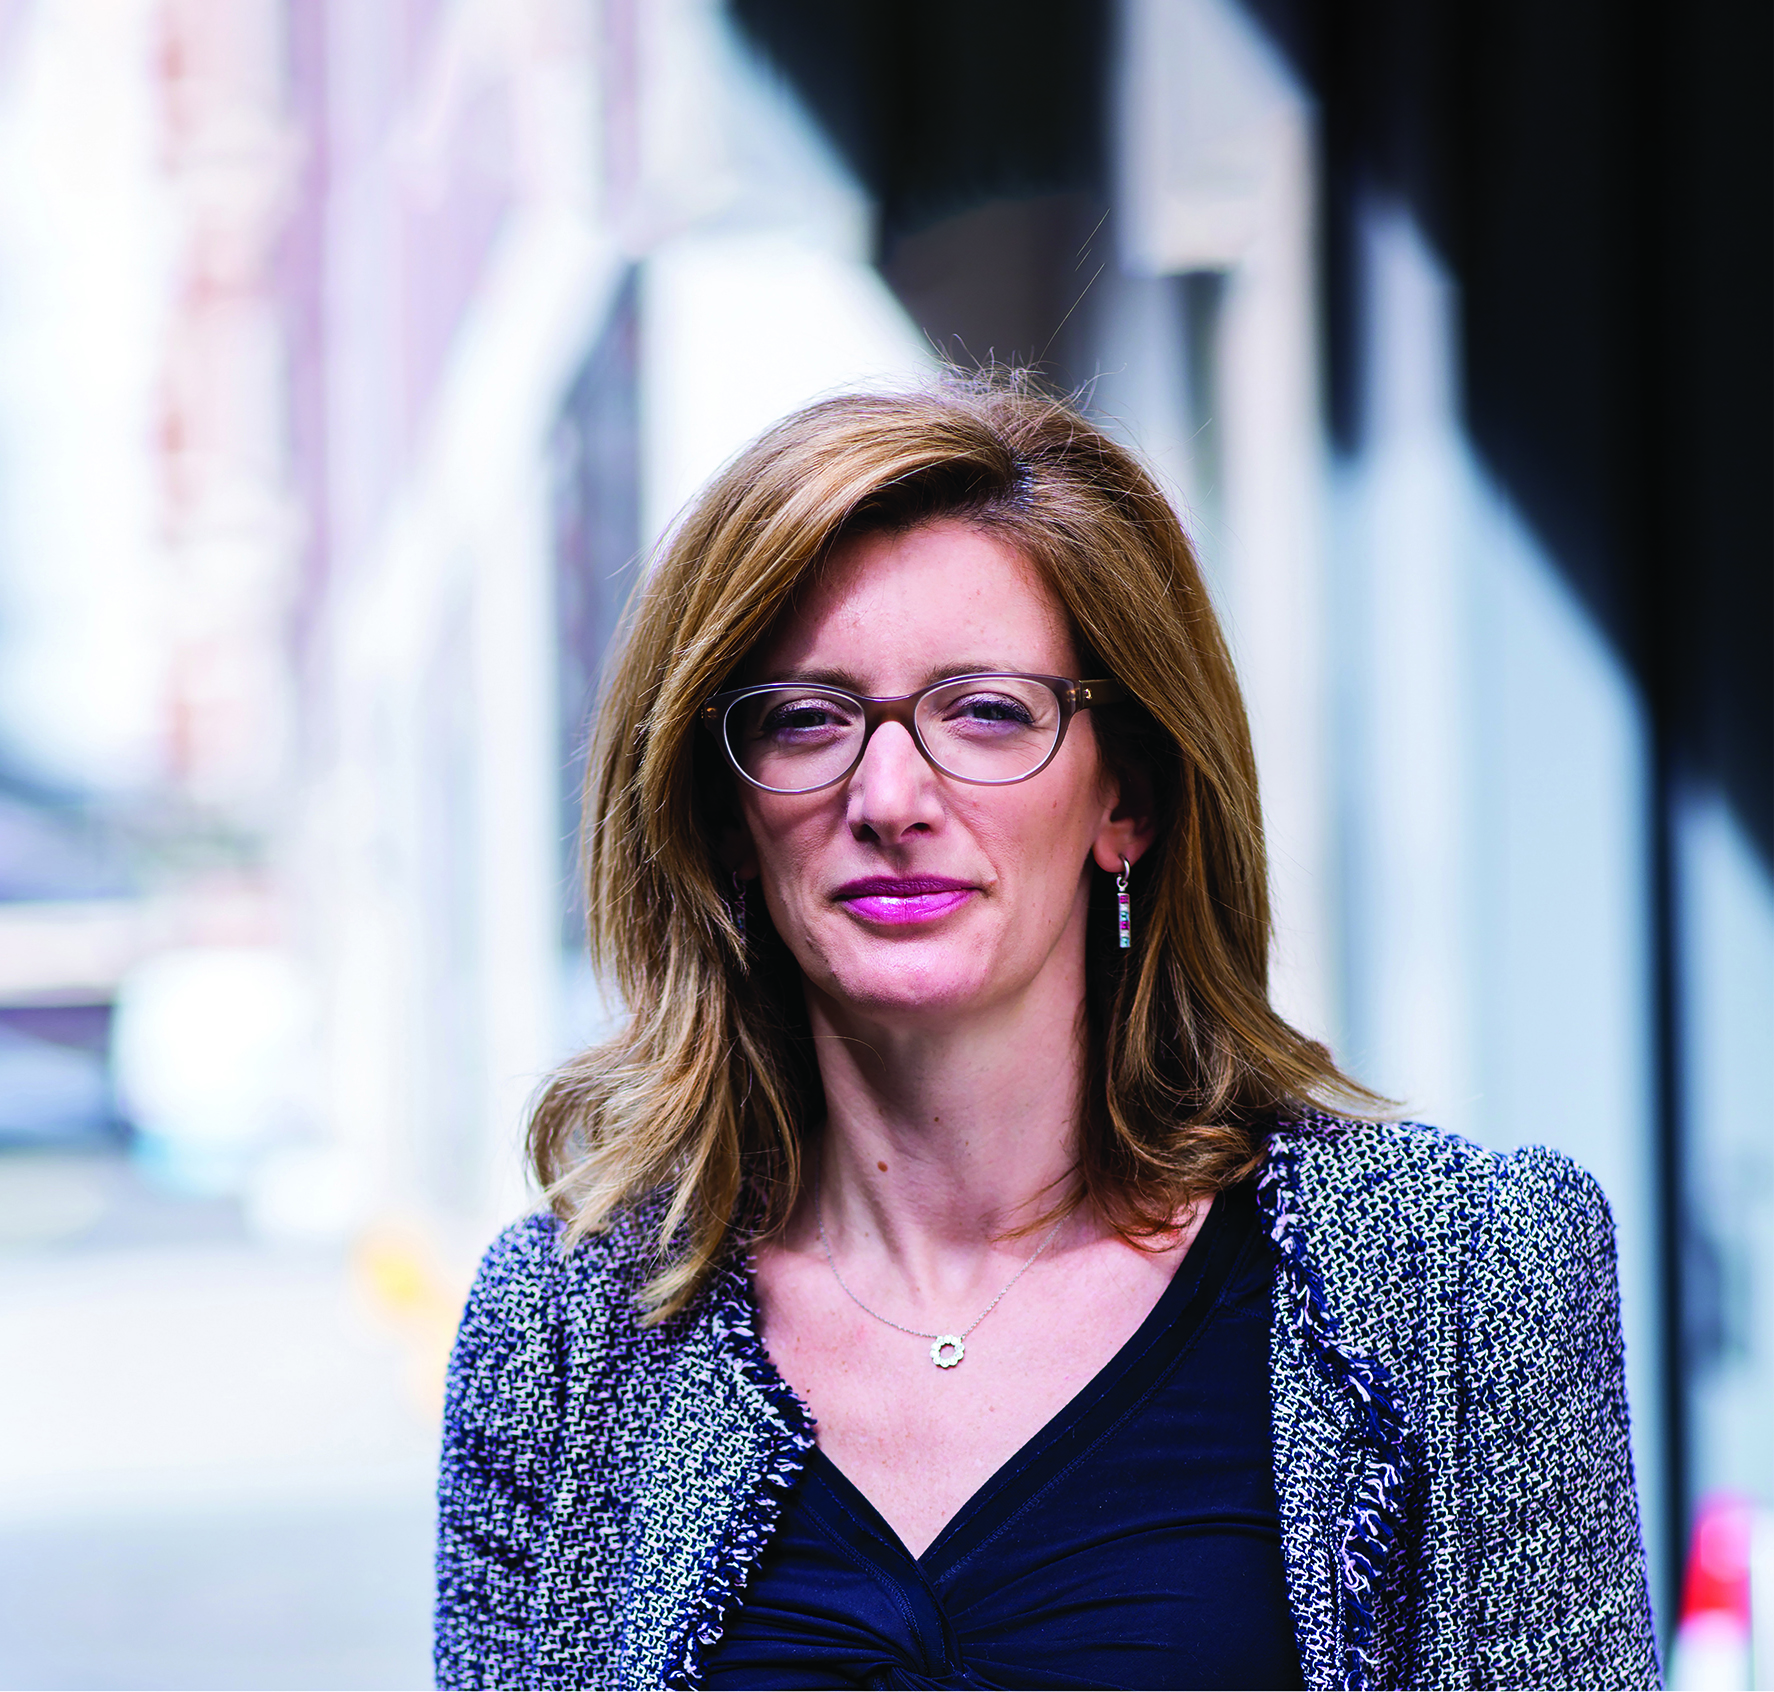 Invesco UK's Stephanie Butcher: 'ESG is the movement of our age'